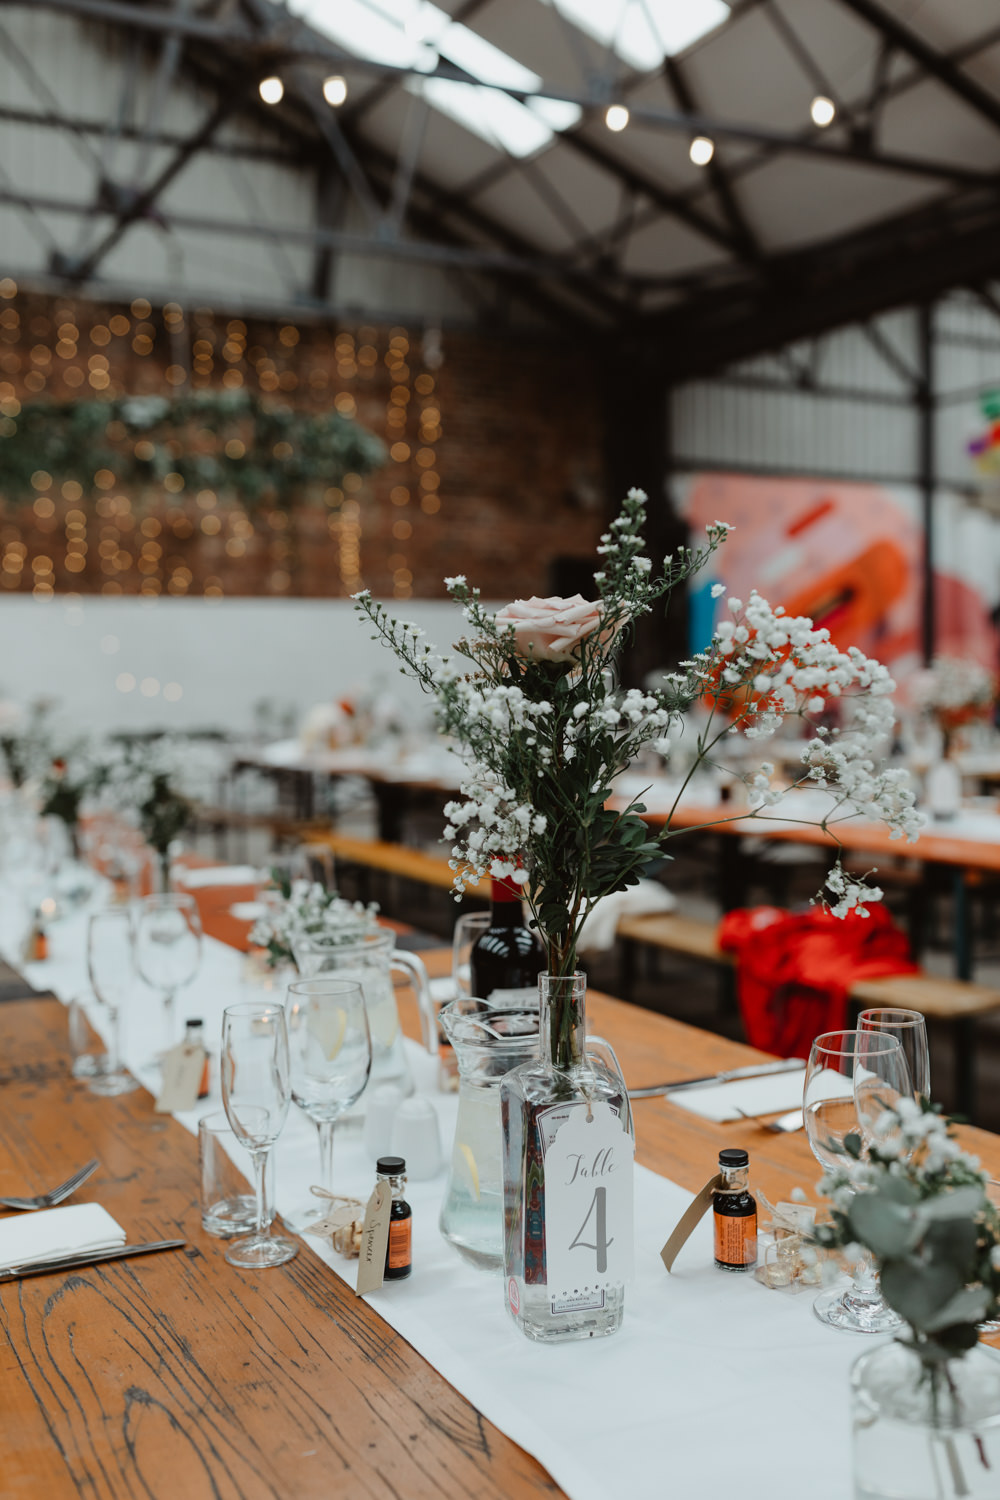 Reception Venue Industrial Warehouse Benches Long Tables Flowers Decor Decoration Runners Festoon Lights 92 Burton Road Wedding Stevie Jay Photography